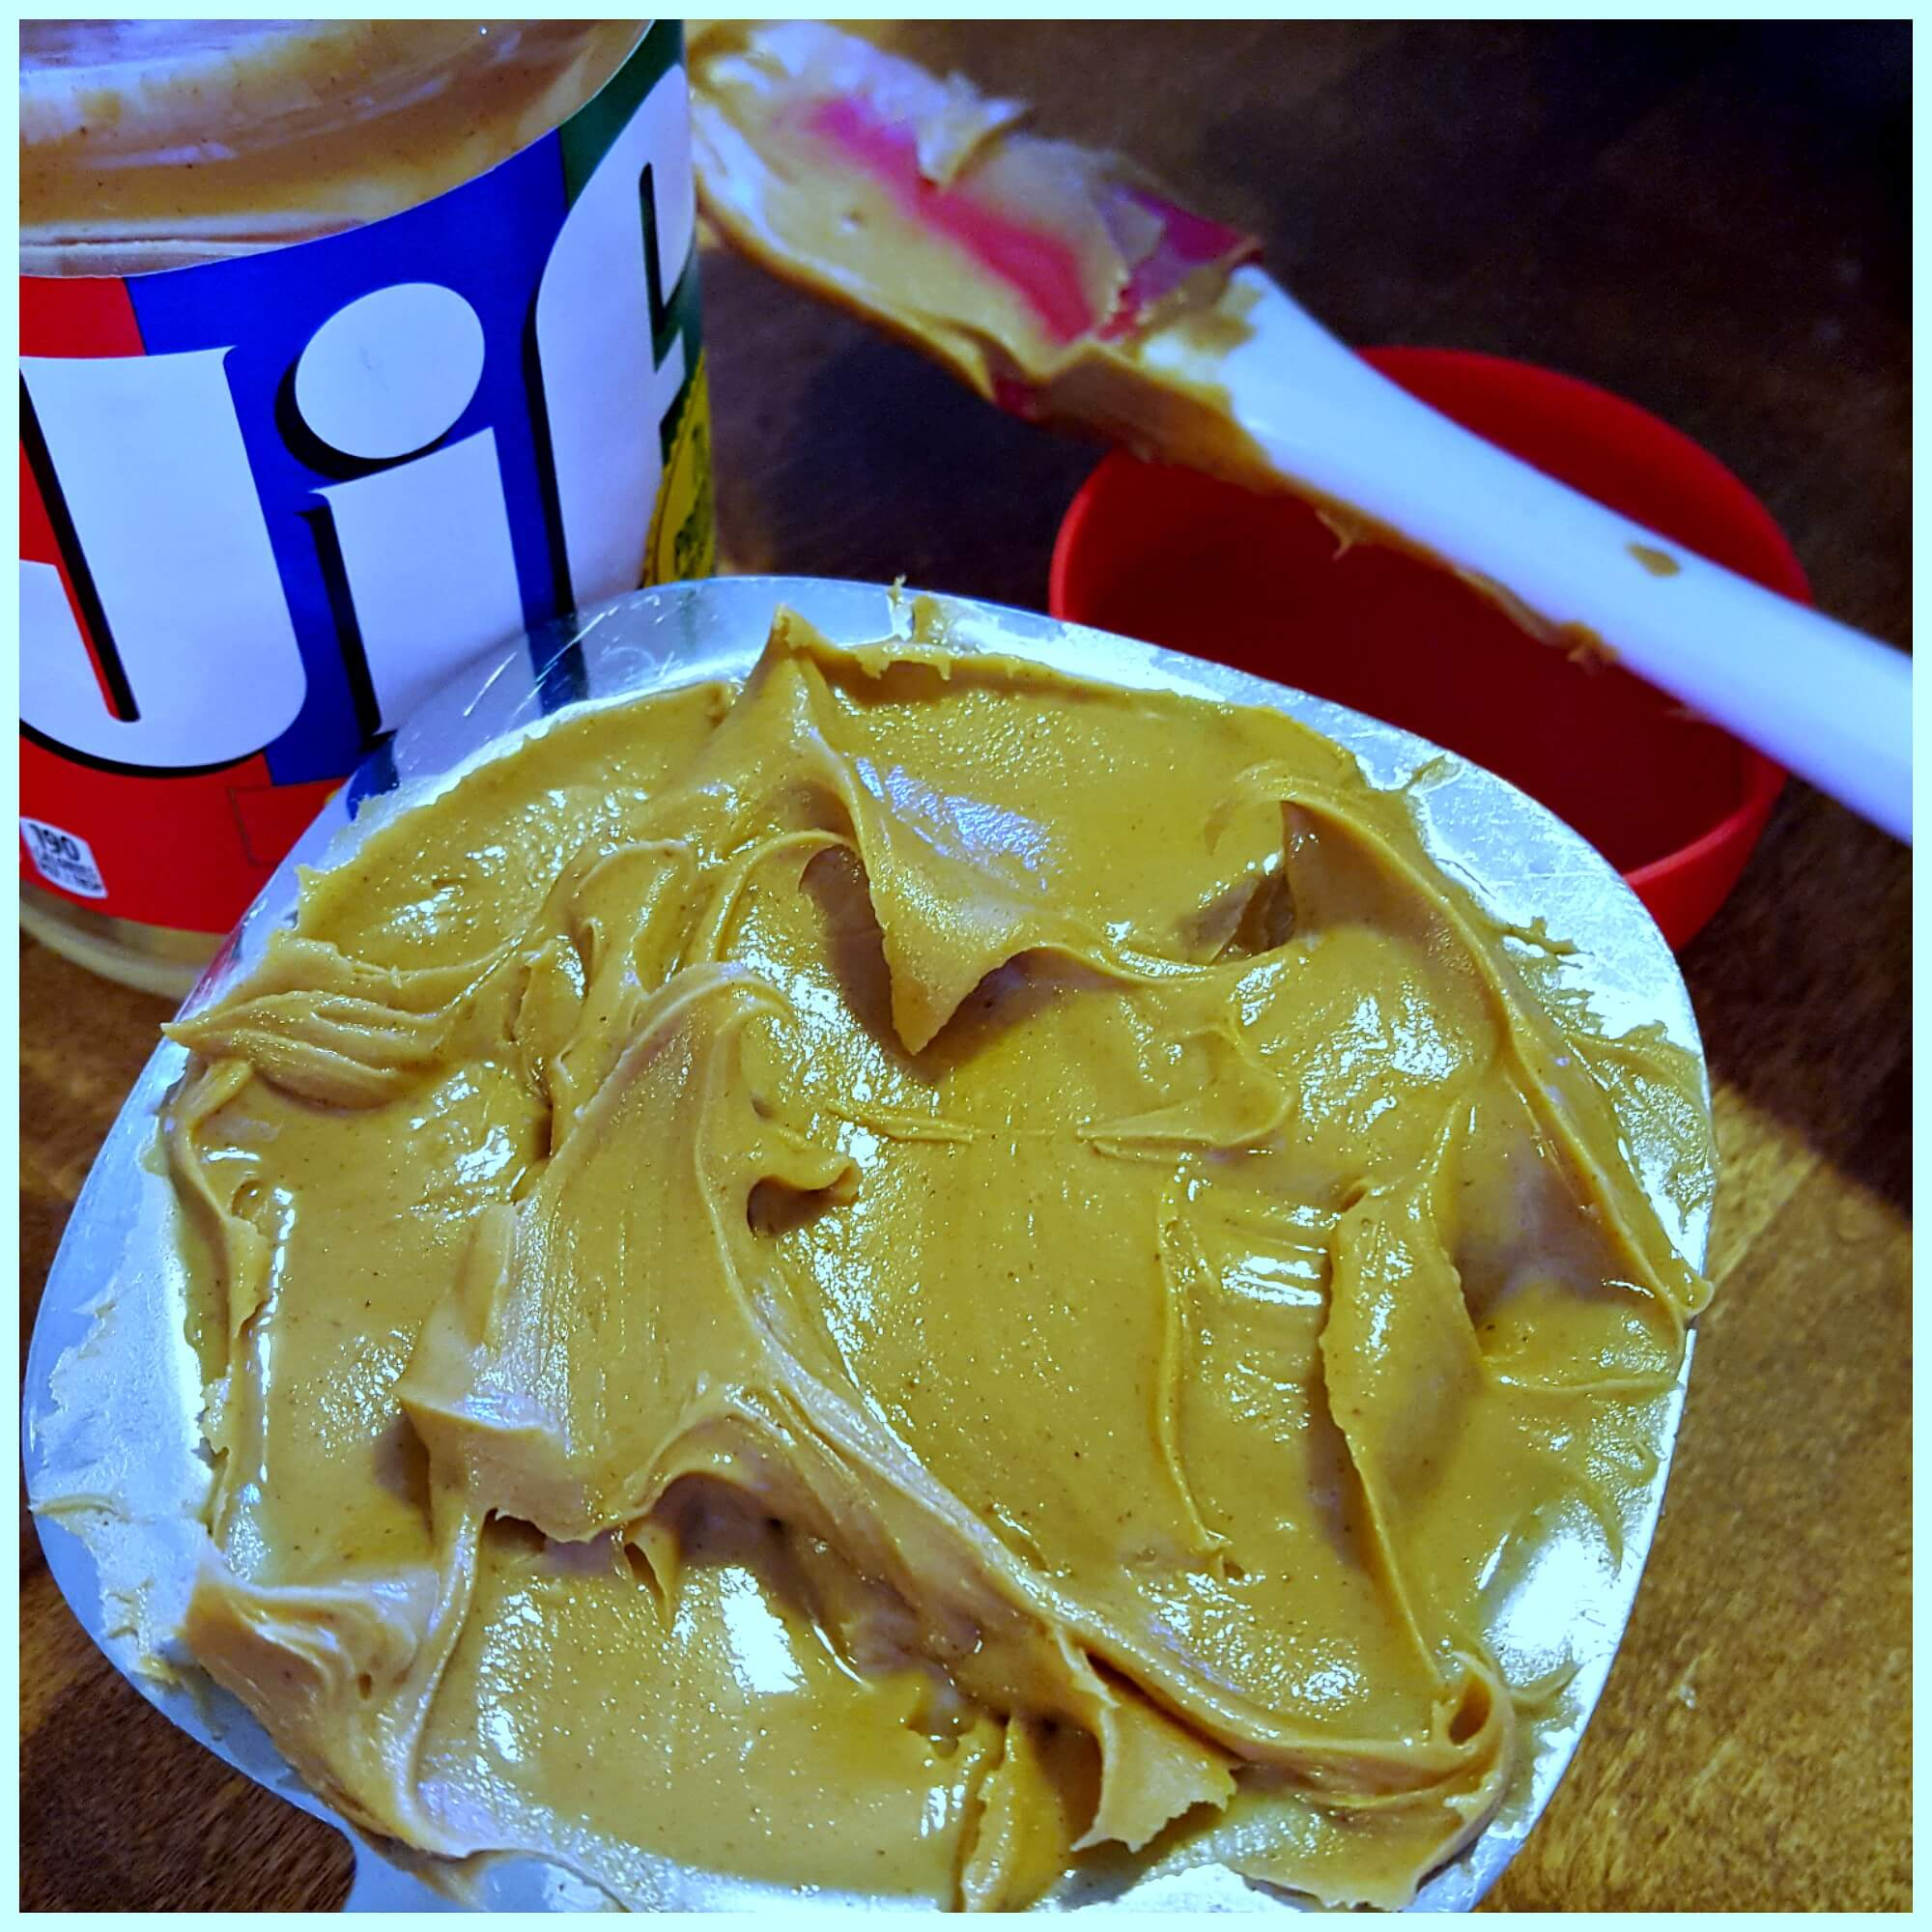 Jif Peanut Butter for baking cookies